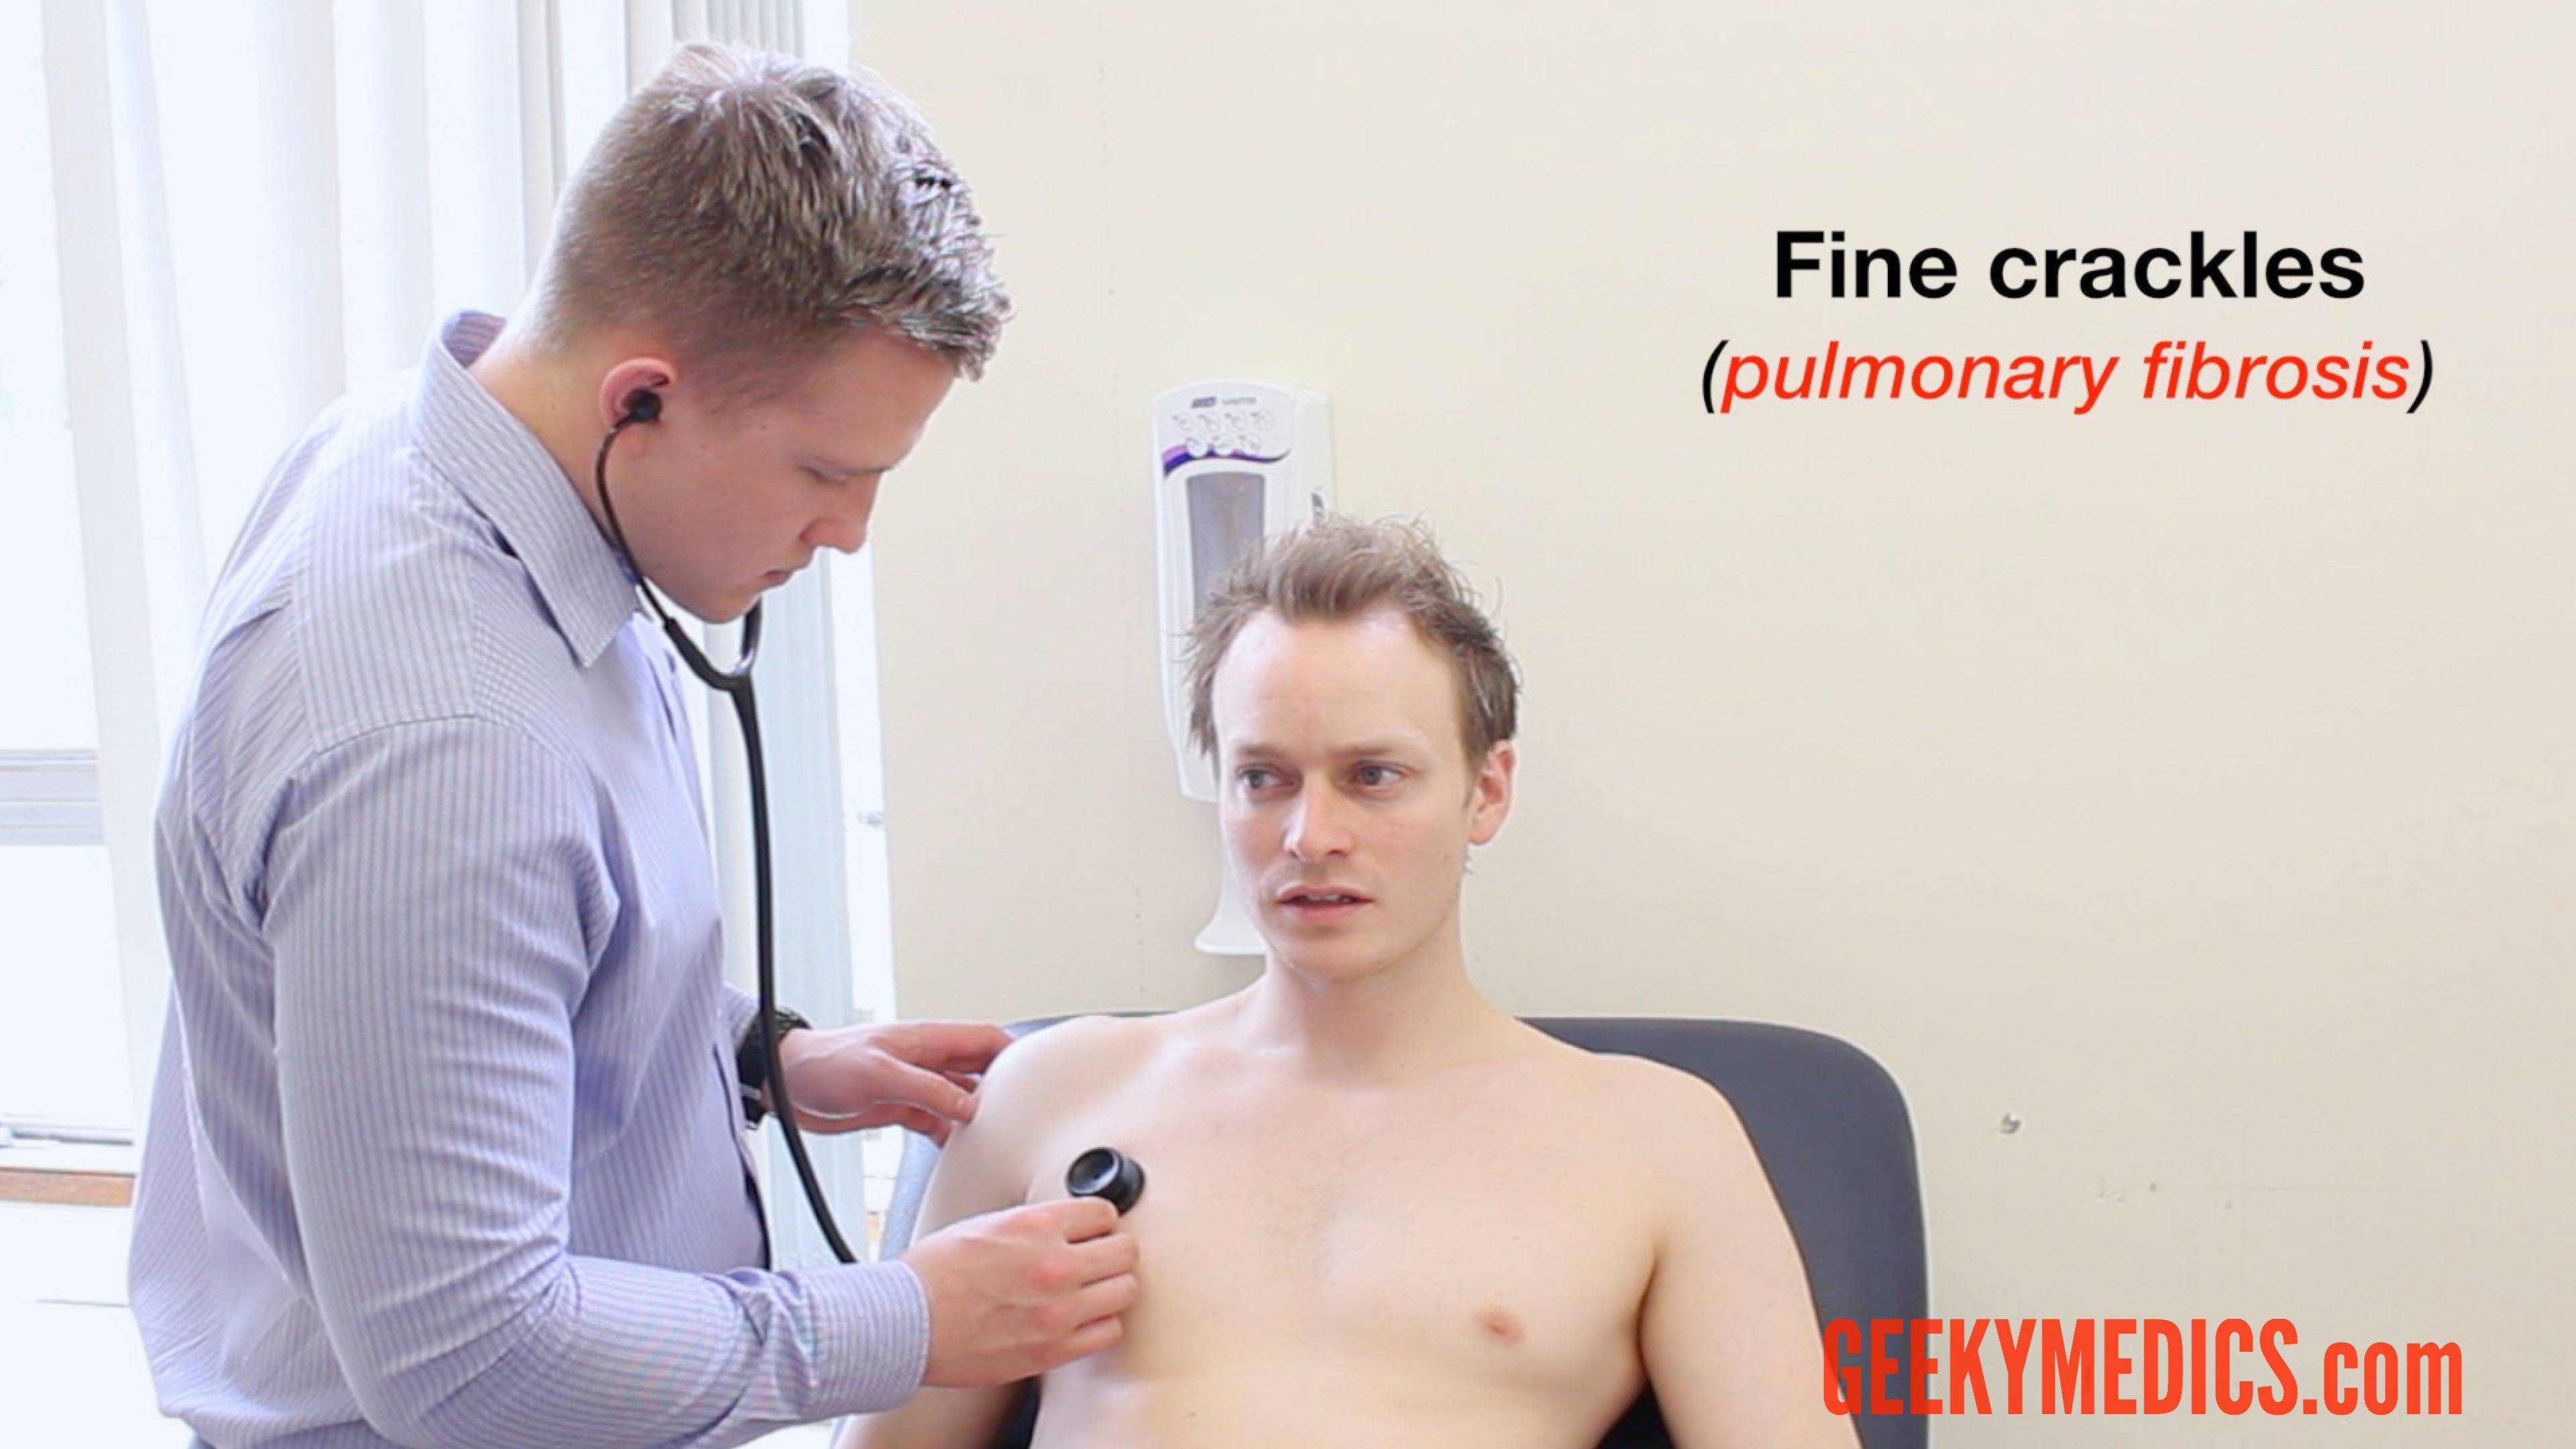 the chest examination The applicant must show his/her passport (or other photo identification) and appointment letter to the doctor during the medical examination the medical examination will include a medical history review, physical examination, chest x-ray and blood tests for syphilis.